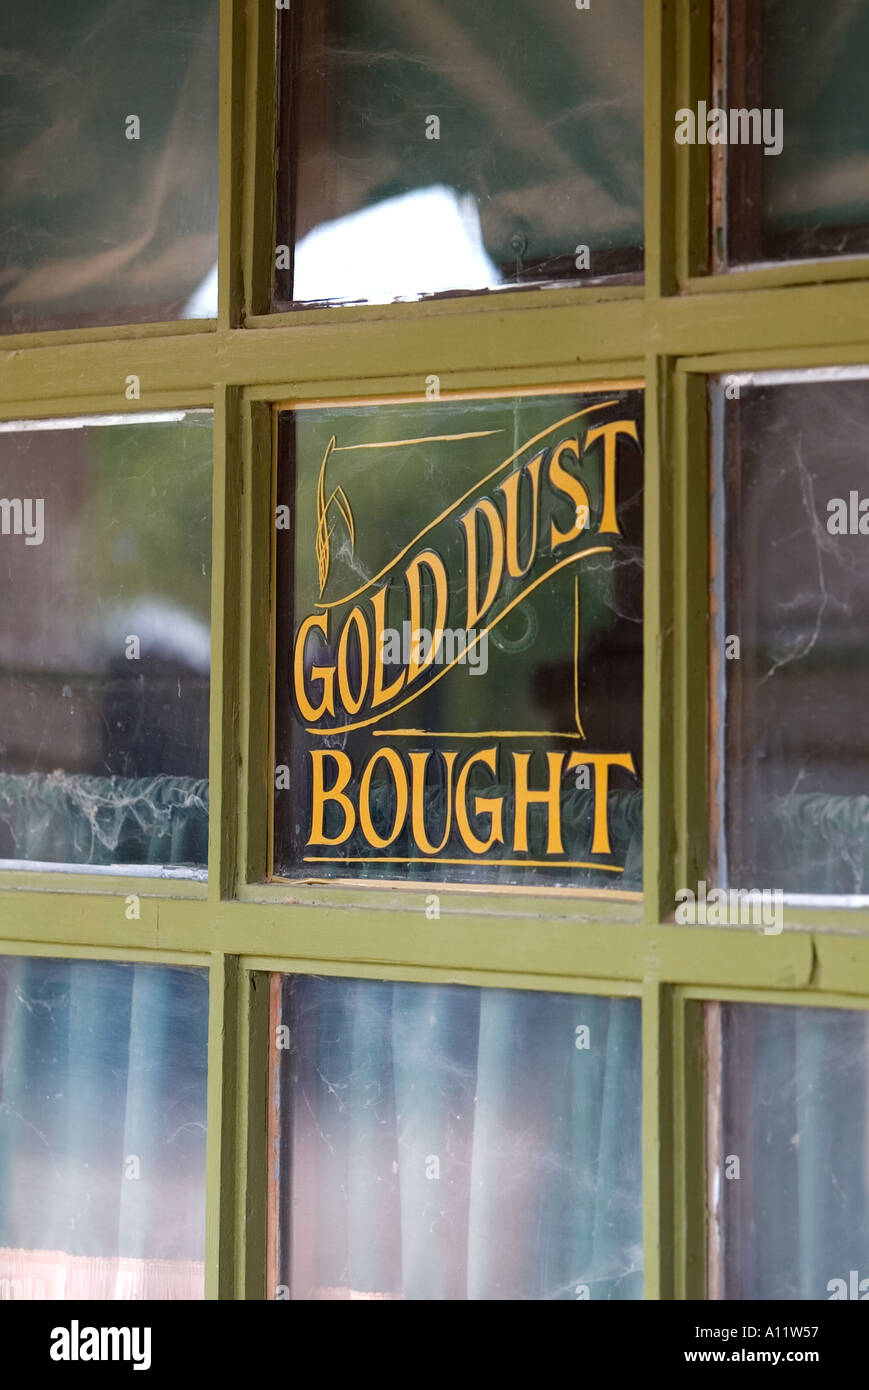 Gold dust bought old western sign in a shop window at Old Tucson Studios Stock Photo